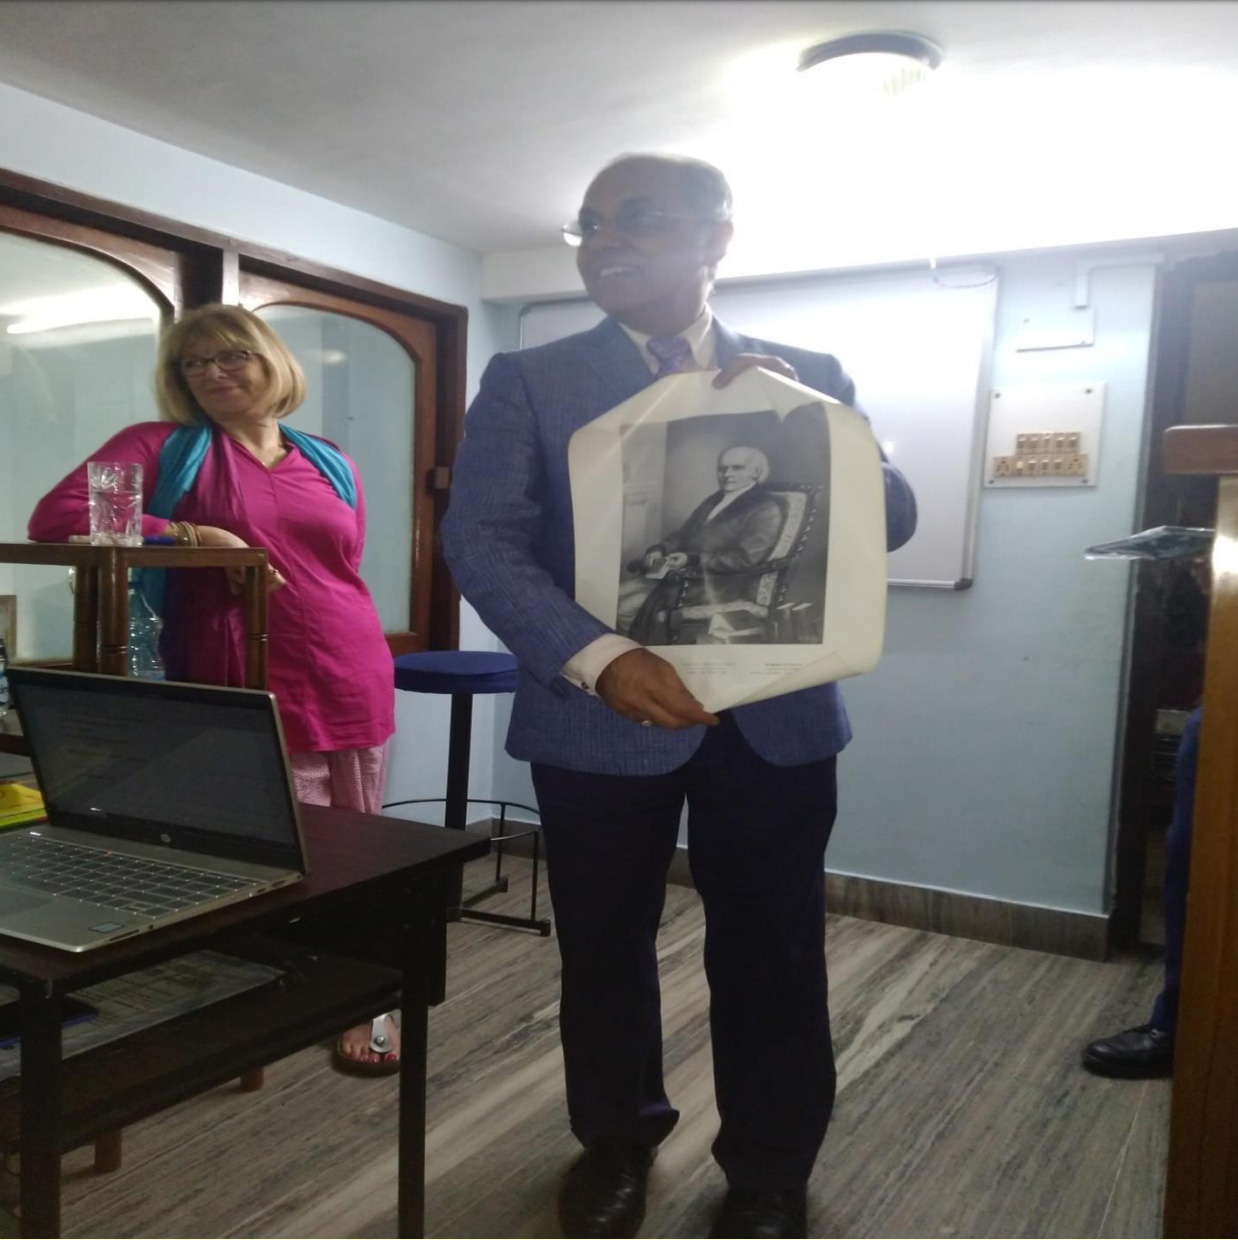 A meaningful gift given to the participants, Hahnemann's portrait for framing in their Clinic Room